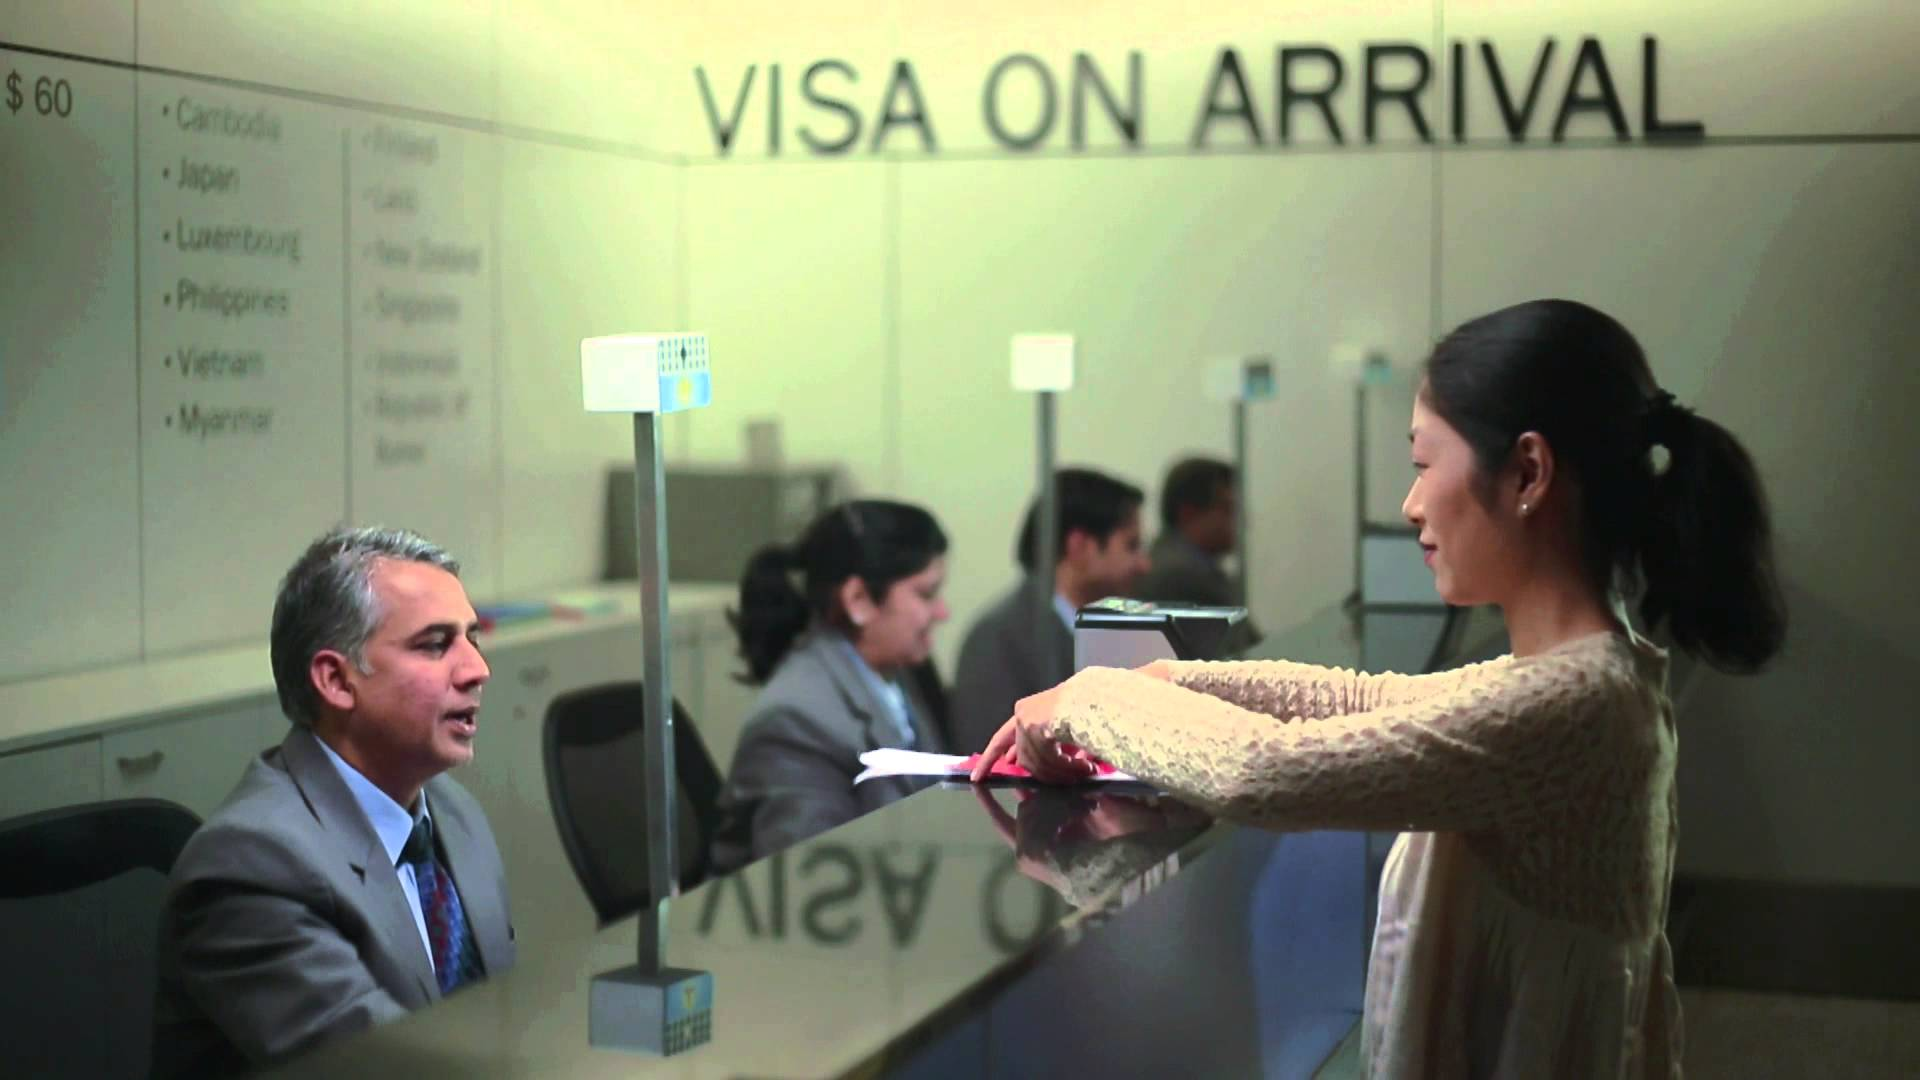 Countries Indian Visitors can travel without visa